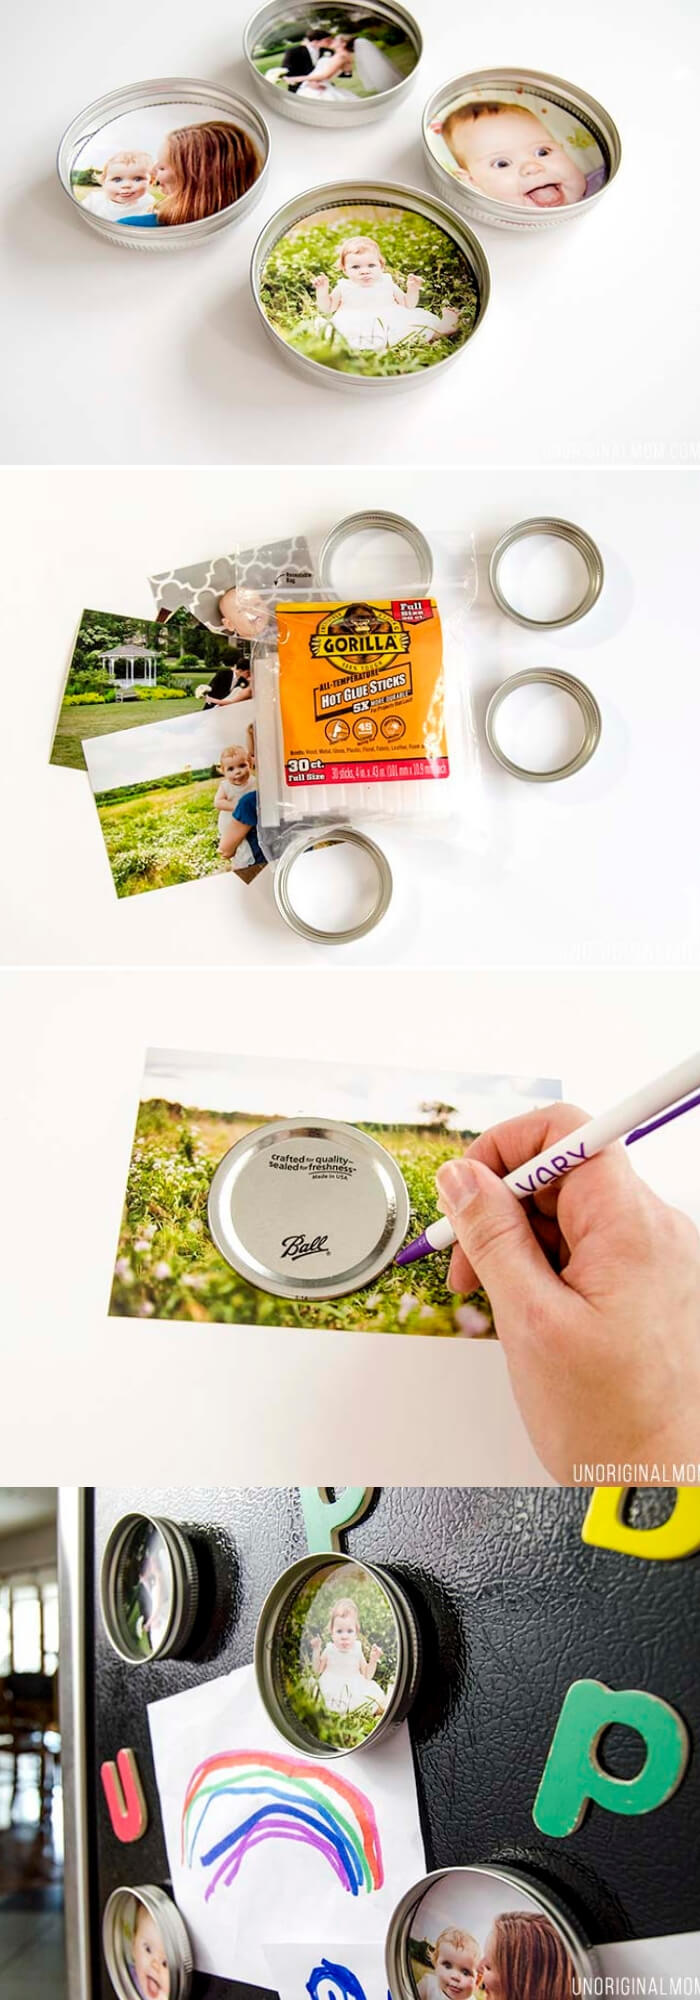 Upcycled Mason Jar Lid Magnets | Christmas Gifts for Grandparents: Creative Holiday Ideas for Grandma and Grandpa